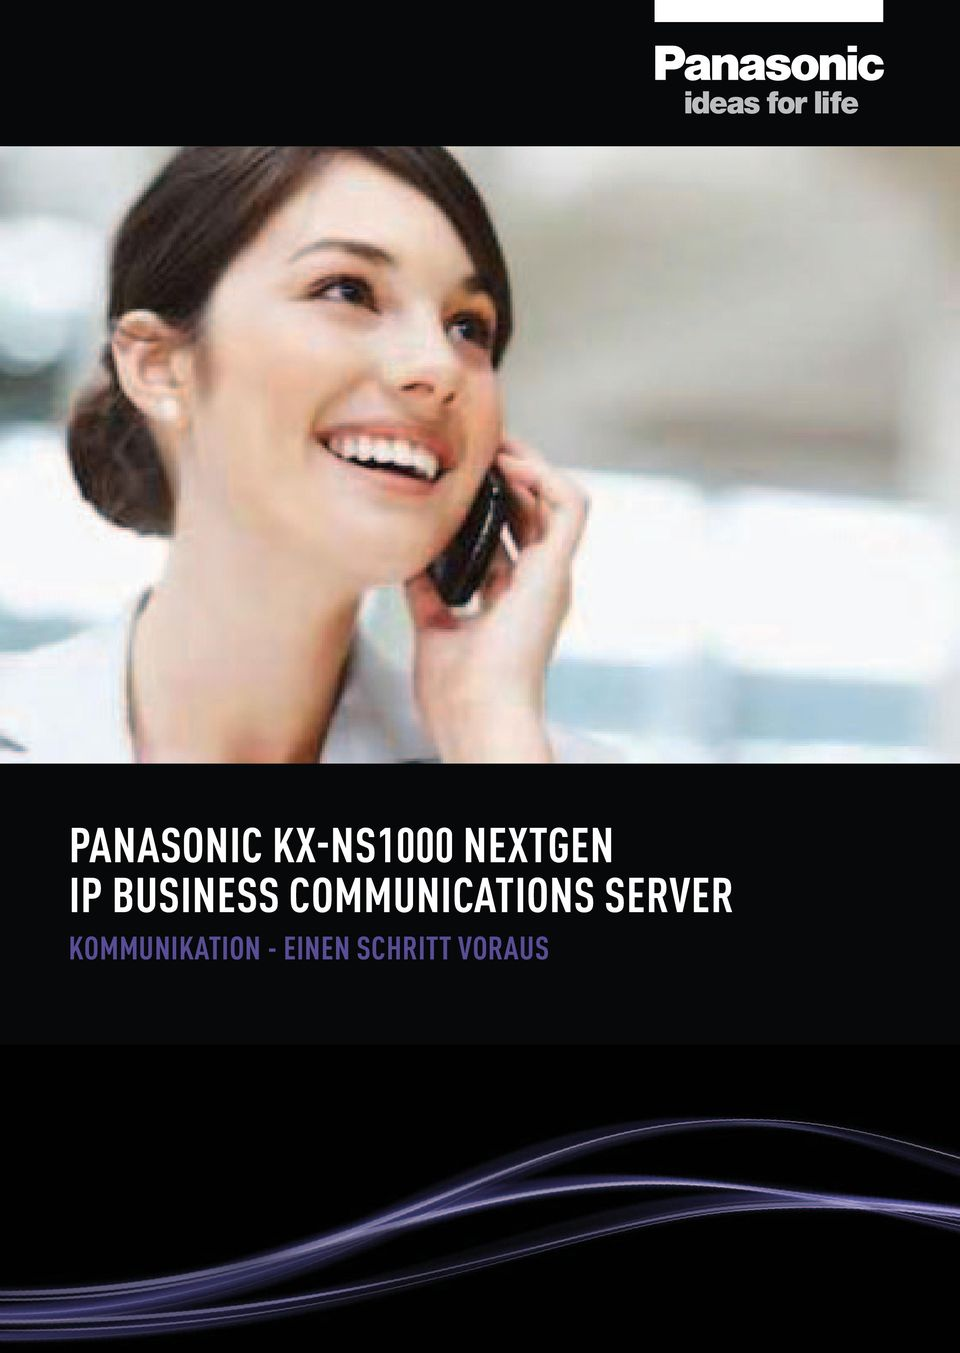 COMMUNICATIONS SERVER